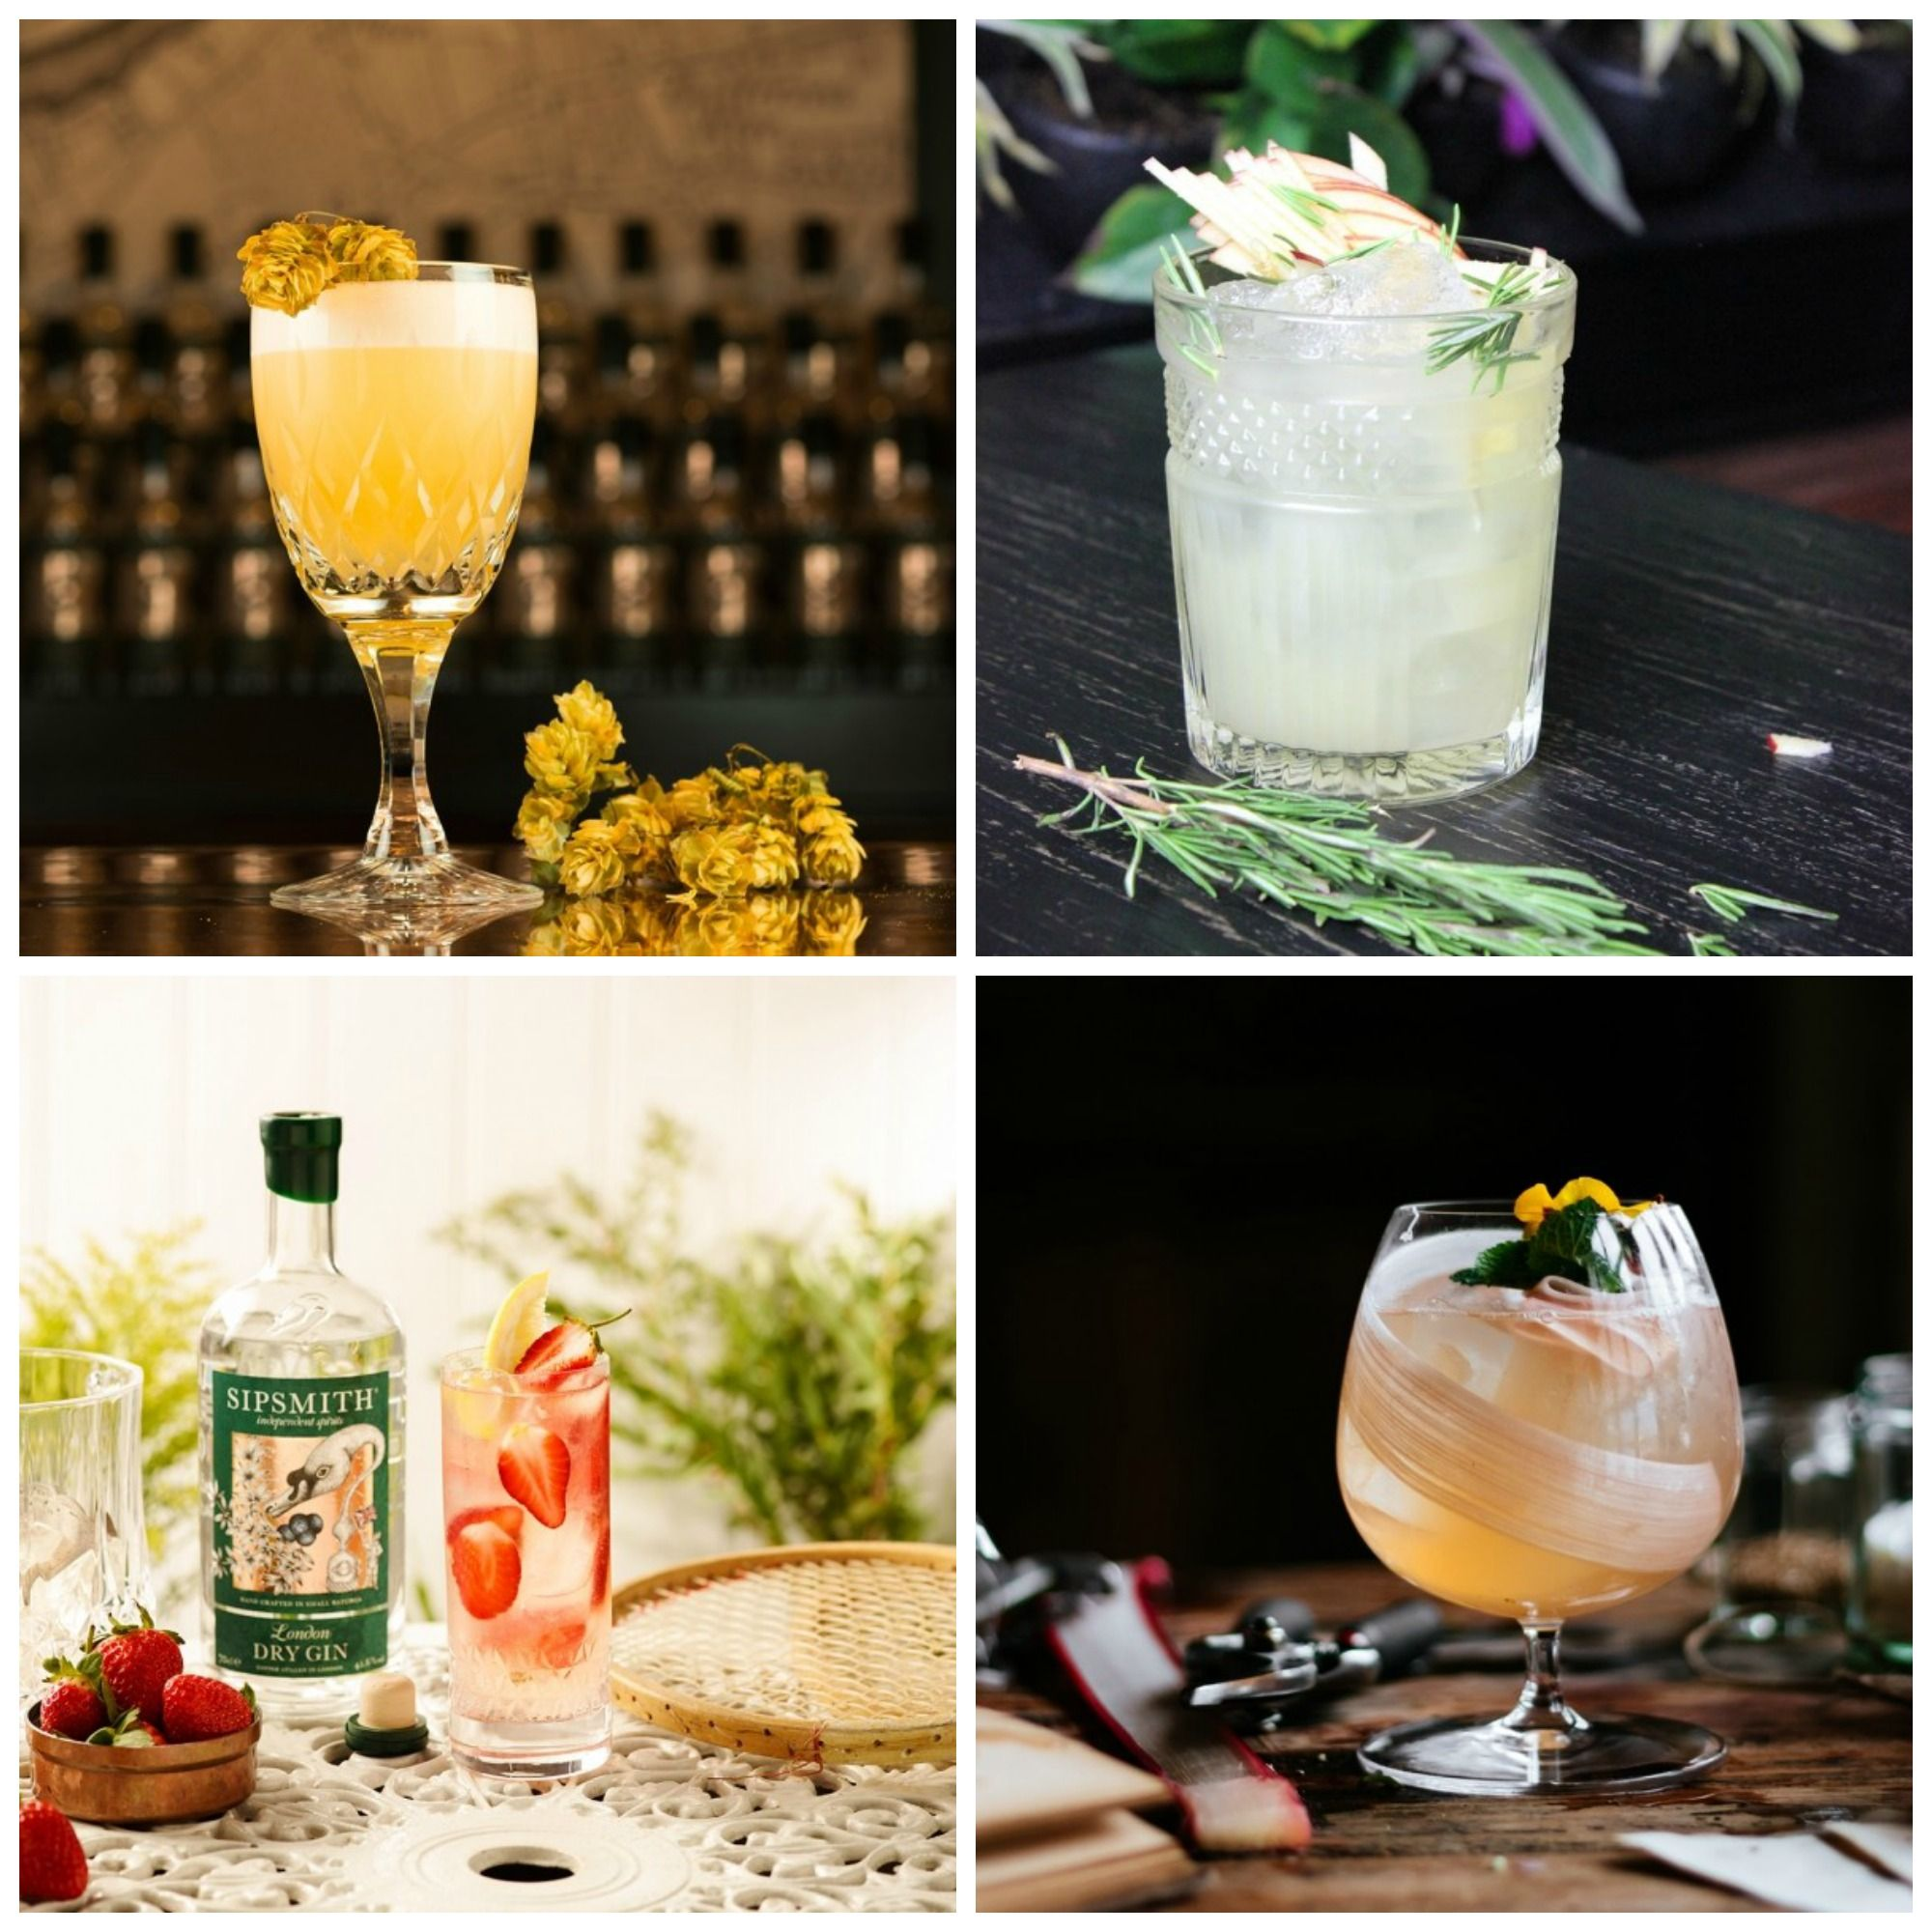 Gin Cocktails Best Gin Cocktail Recipes And Ideas Good Housekeeping